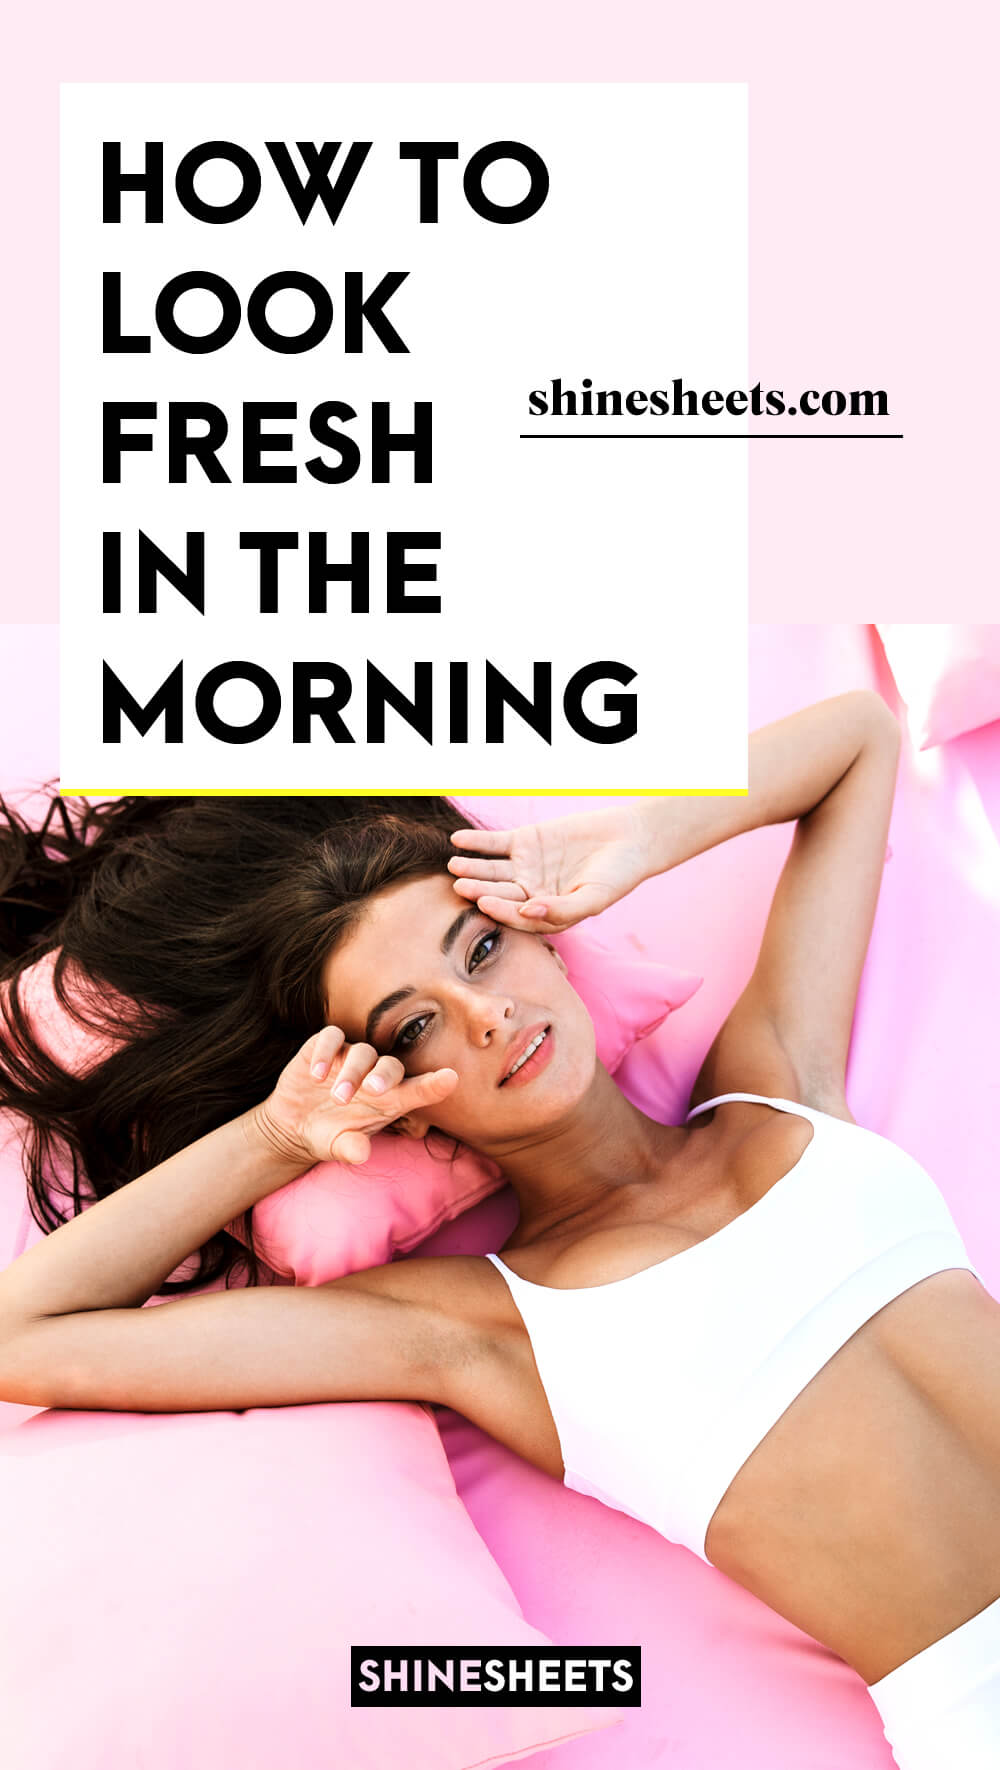 pretty woman as an illustration of how to look fresh in the morning